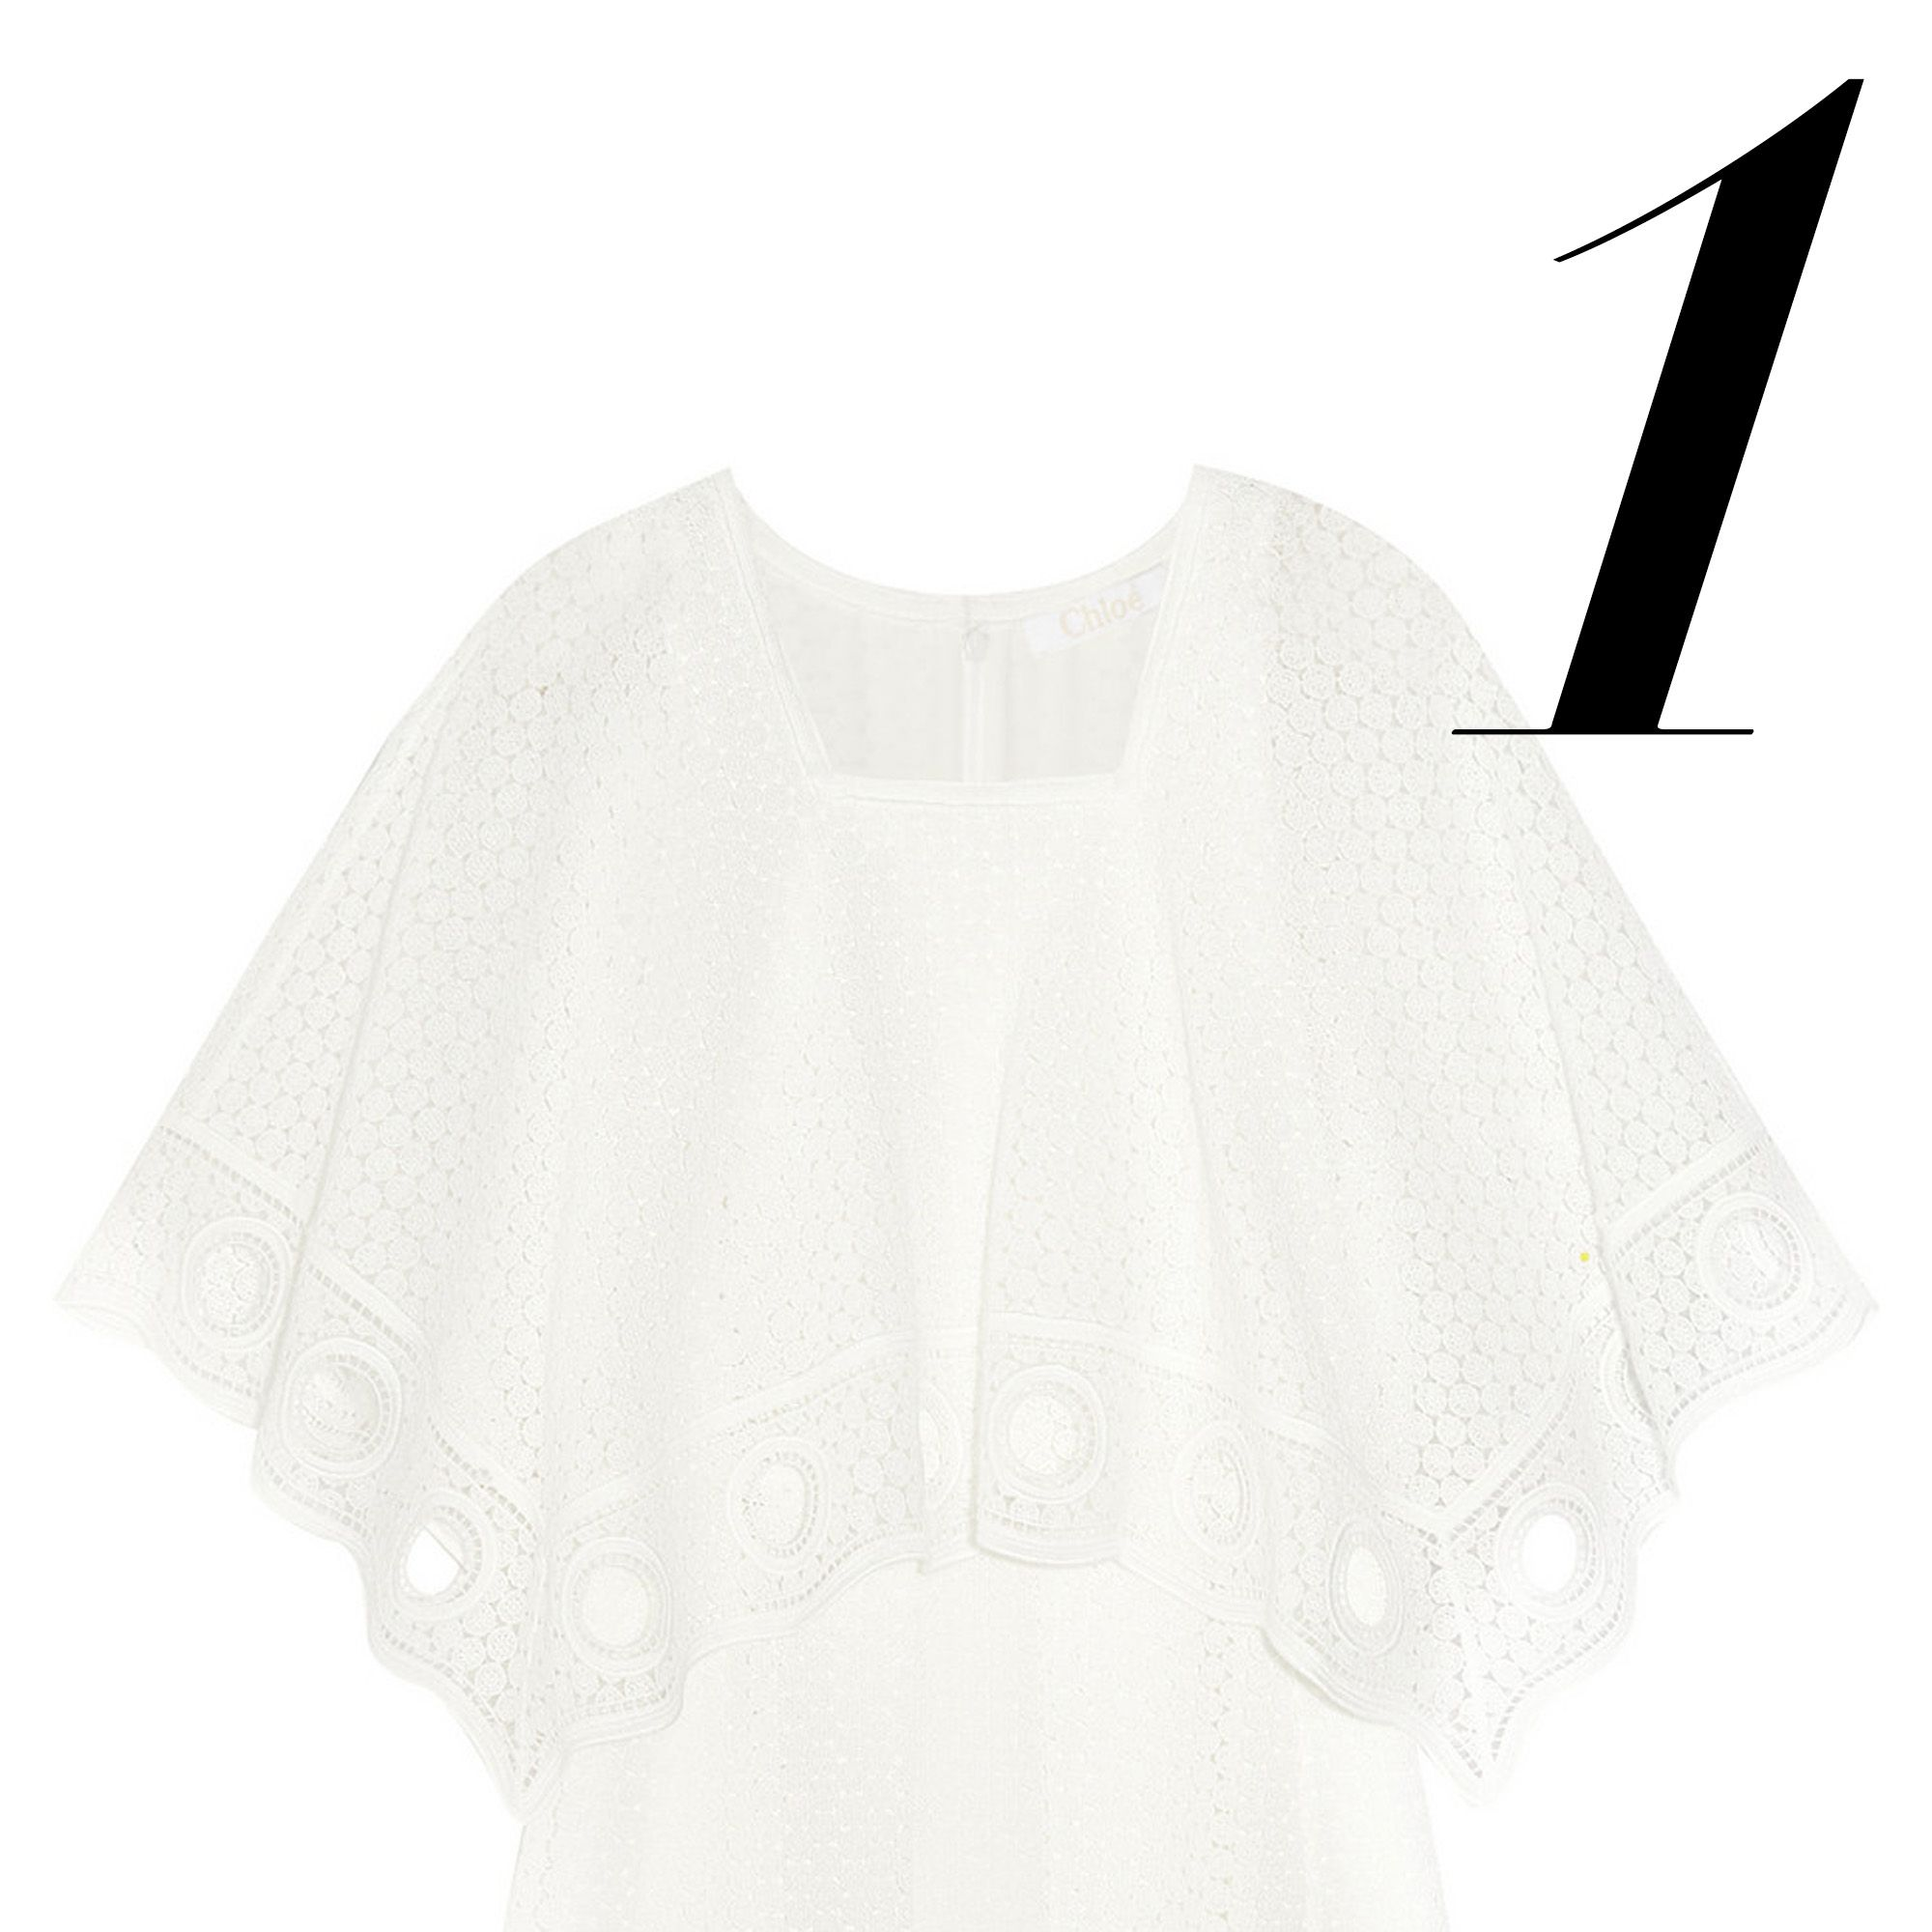 "<em>Chloé dress, $2,995, <a target=""_blank"" href=""http://www.net-a-porter.com/product/544832/Chloe/crocheted-cotton-blend-mini-dress"">net-a-porter.com.</a></em>"